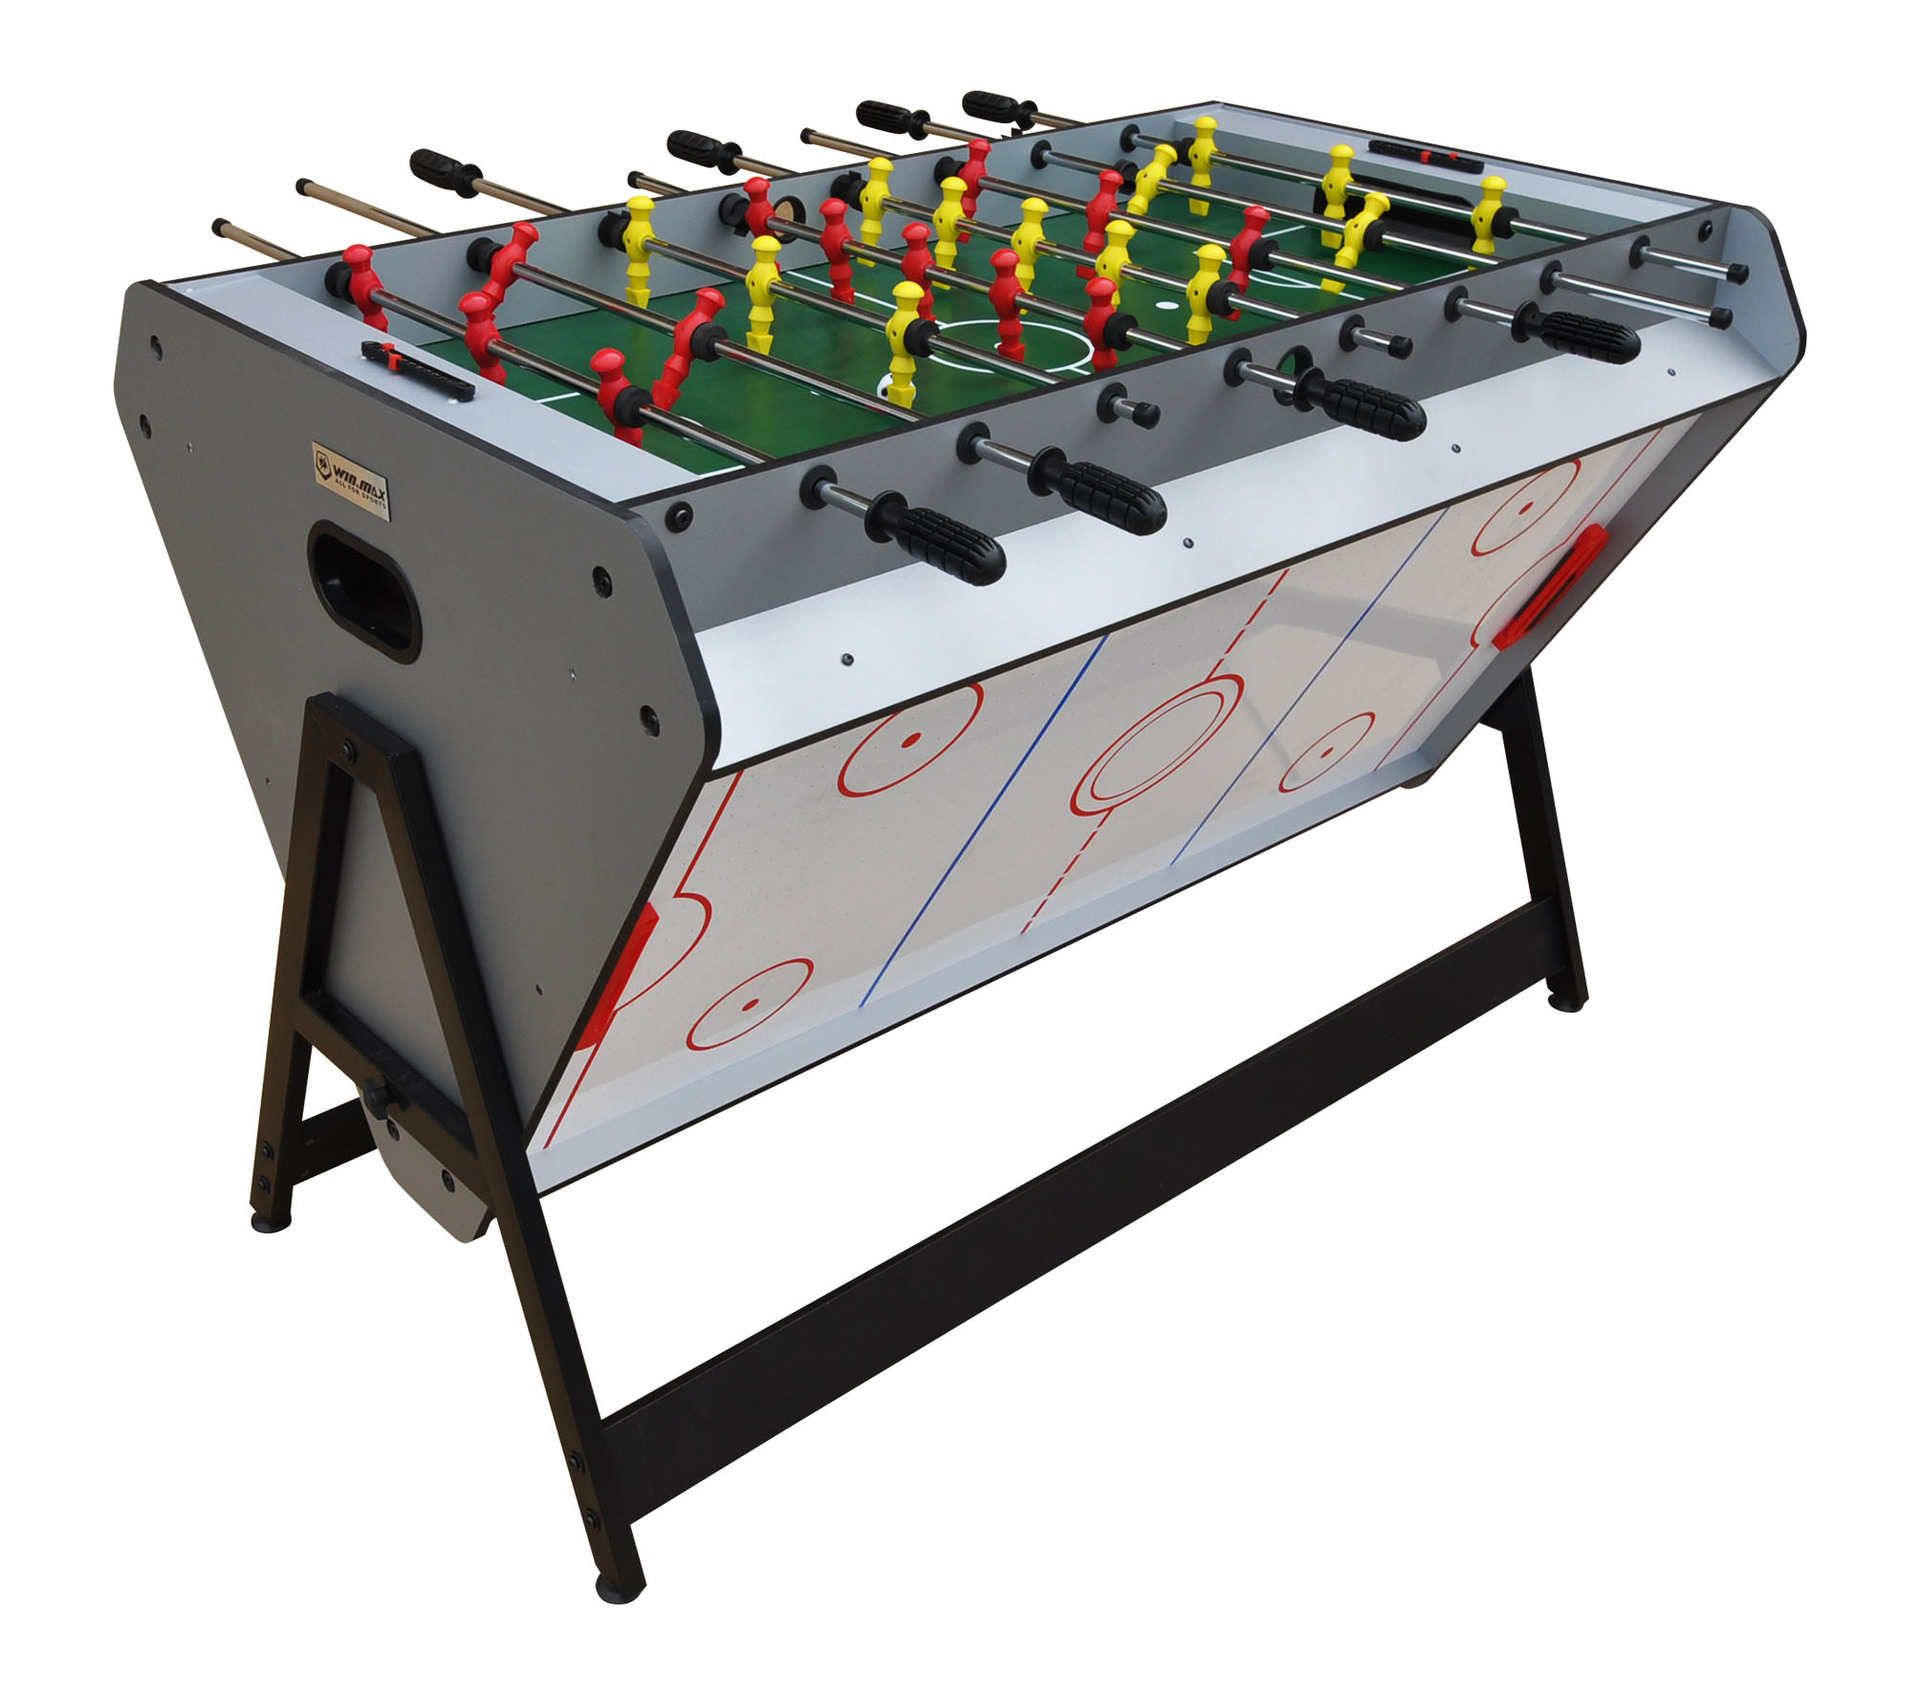 Grappig Indoor Sport muntautomaat 3 in 1 multi voetbal tafel ijshockey arcade tafel games for sale